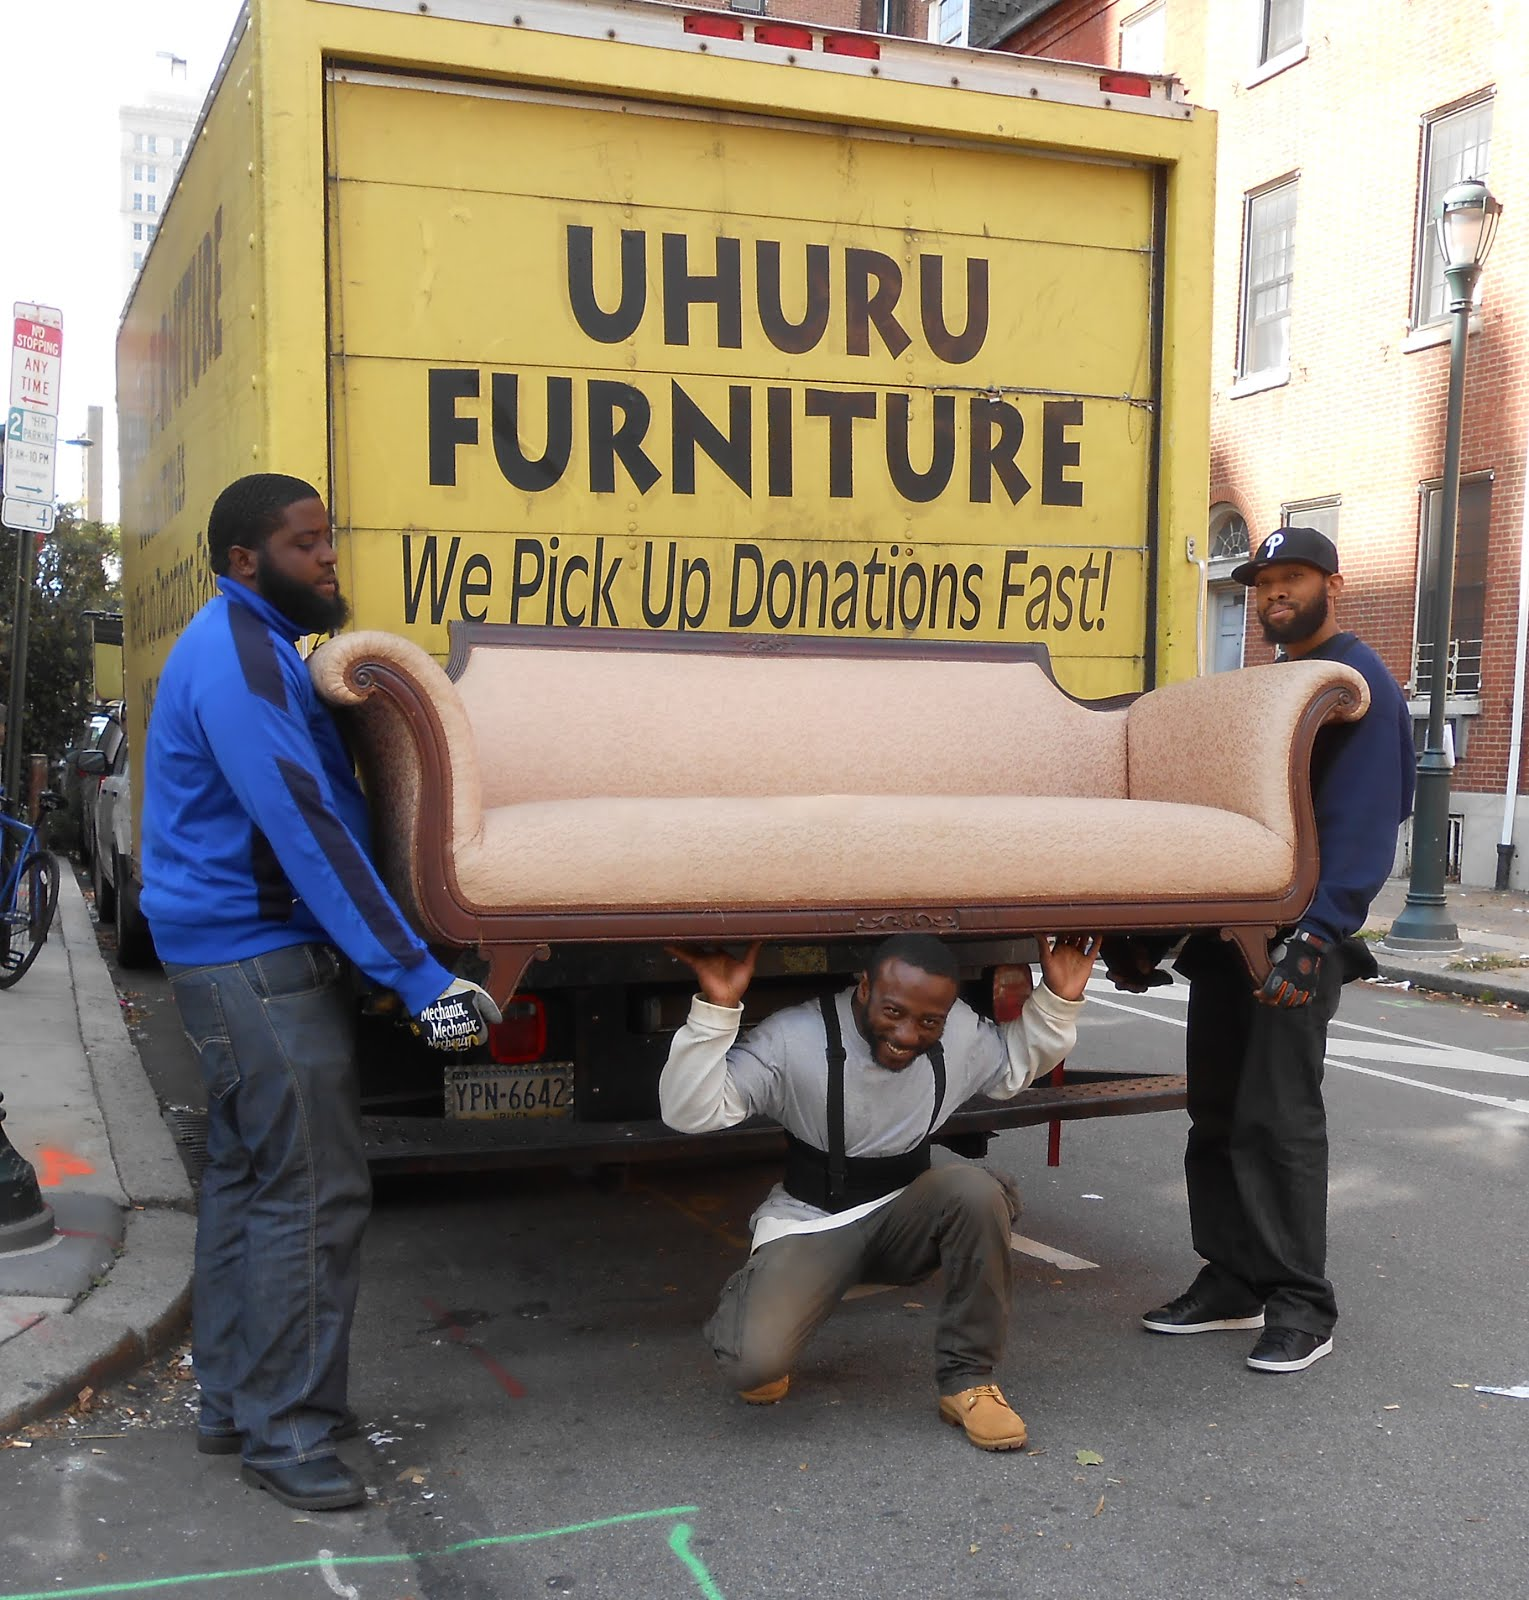 Donate Furniture Pick Up Free Boston: Donate A Couch Free Pick Up